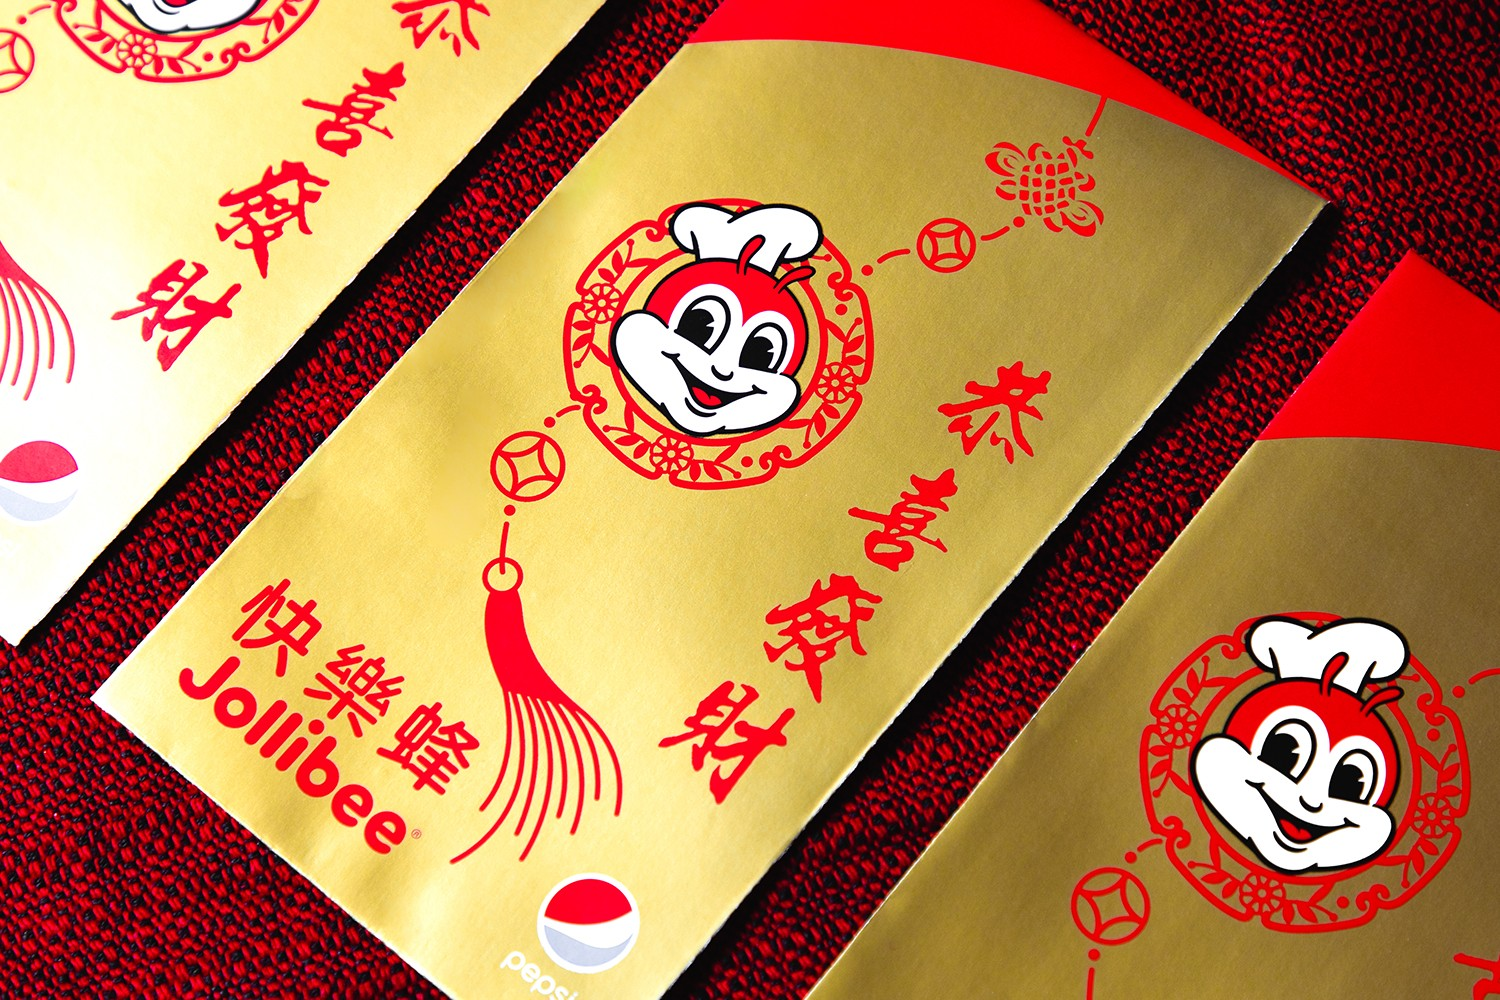 Best Branded Lunar New Year Red Pockets Round-Up year of the rat Louis Vuitton Celine Paul Smith bape Adidas hbx baby milo Burberry clot Chinese new year fendi Gucci nike Rimowa Tiffany and co moma Jollibee Valentino Versace